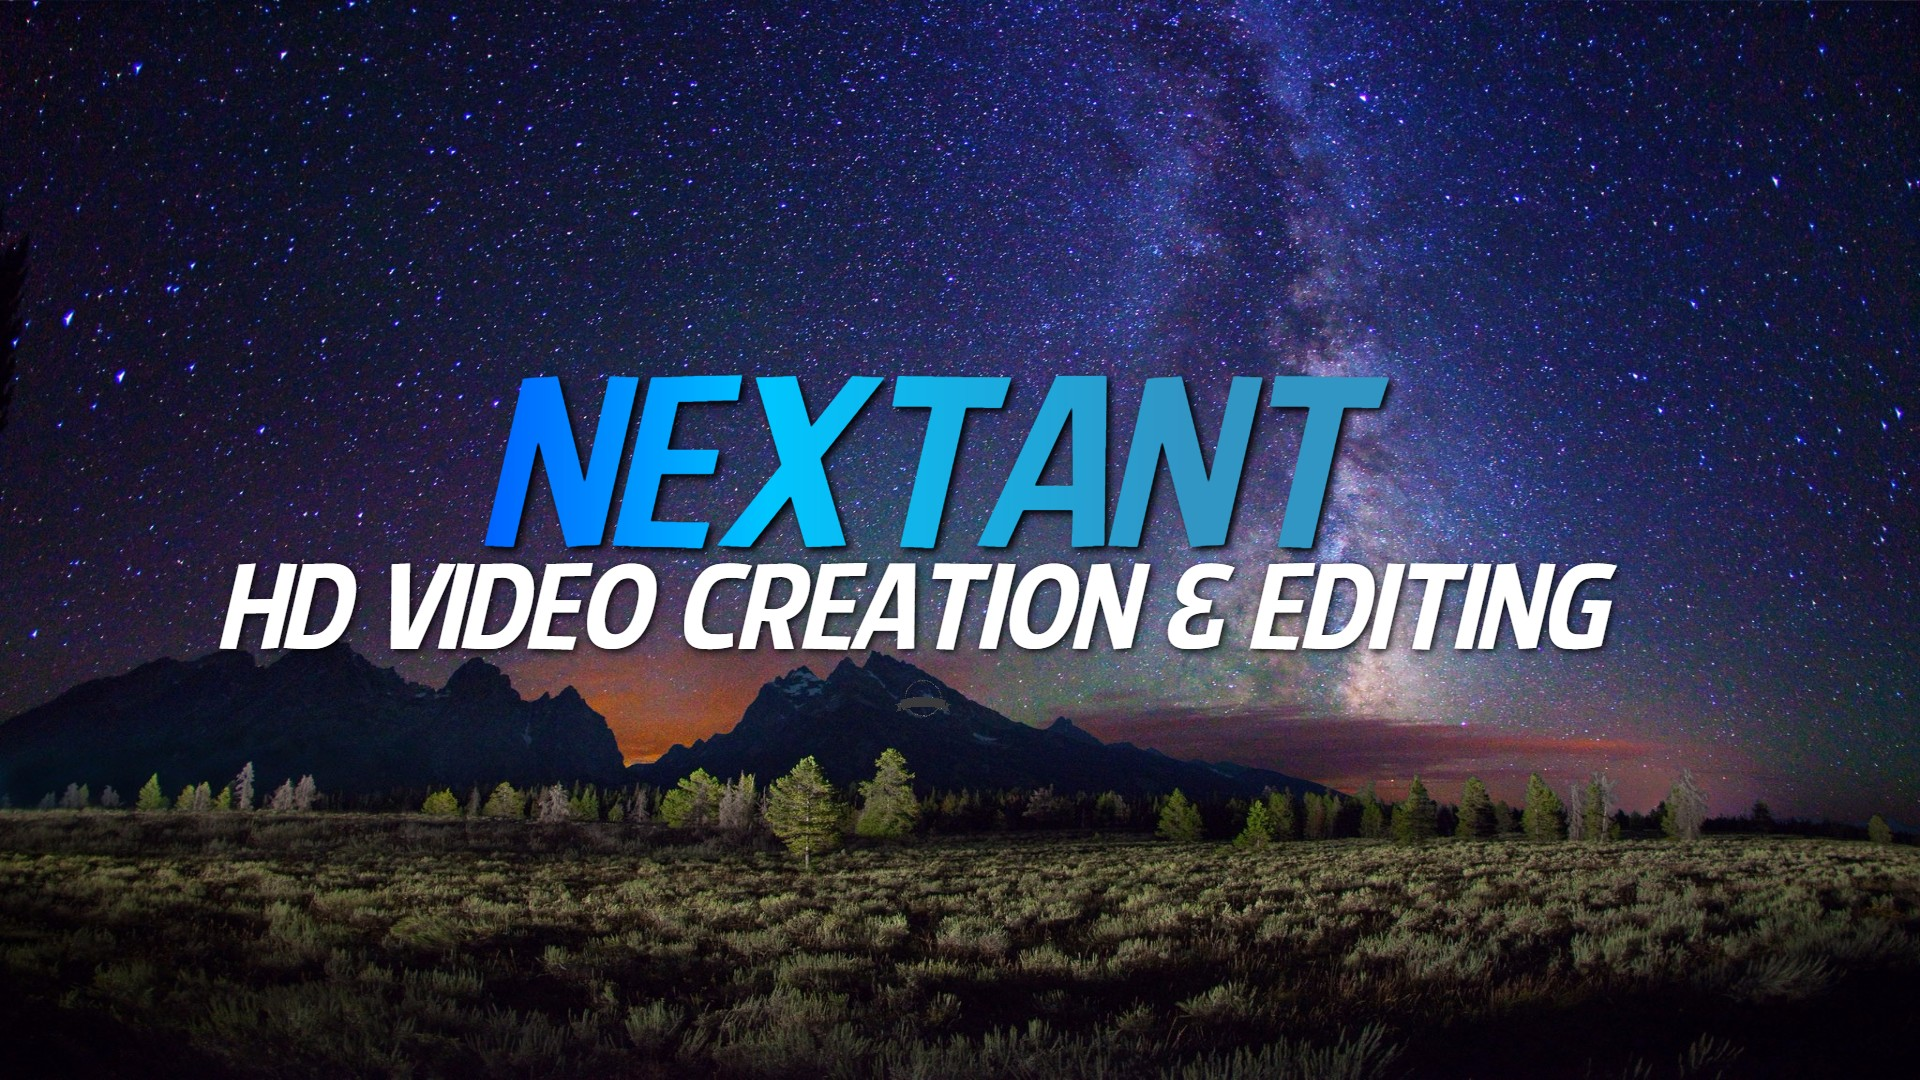 EXCLUSIVE 1080P HD VIDEO CREATION & EDITING